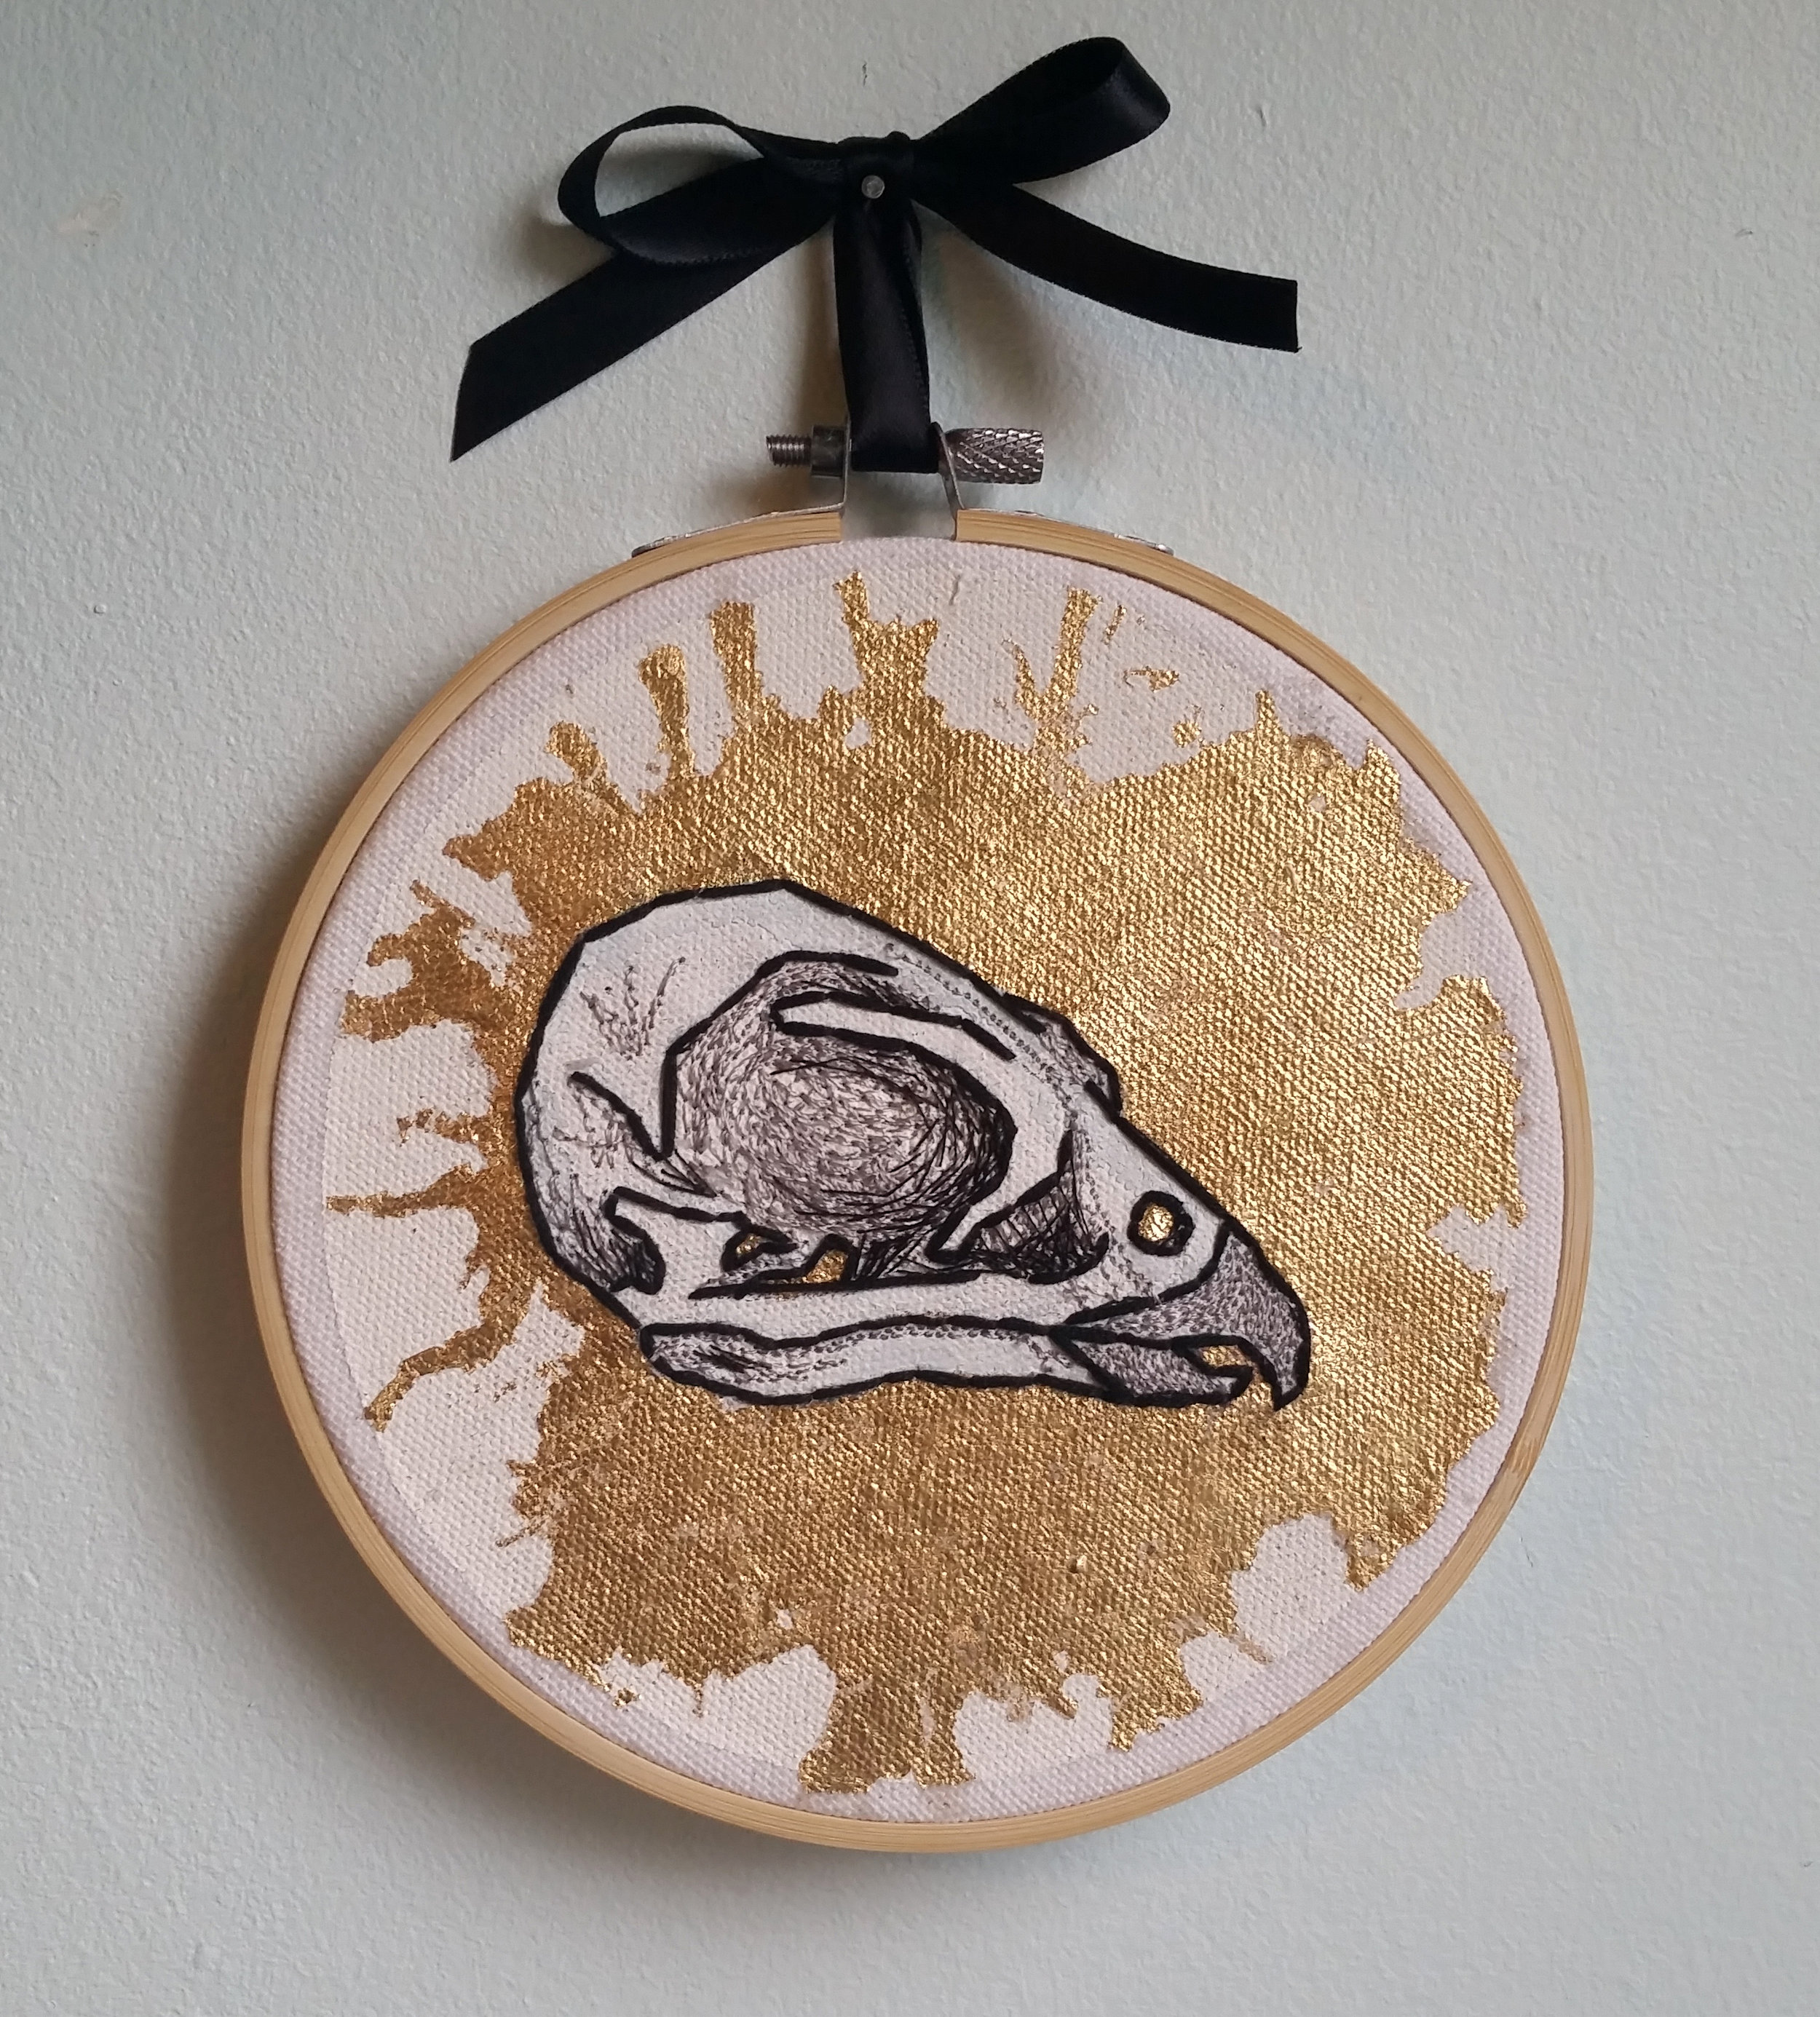 "Falco peregrinus (Peregrine falcon) , metal leaf, thread, and embroidery floss on canvas, 6"" x 6"", $300"